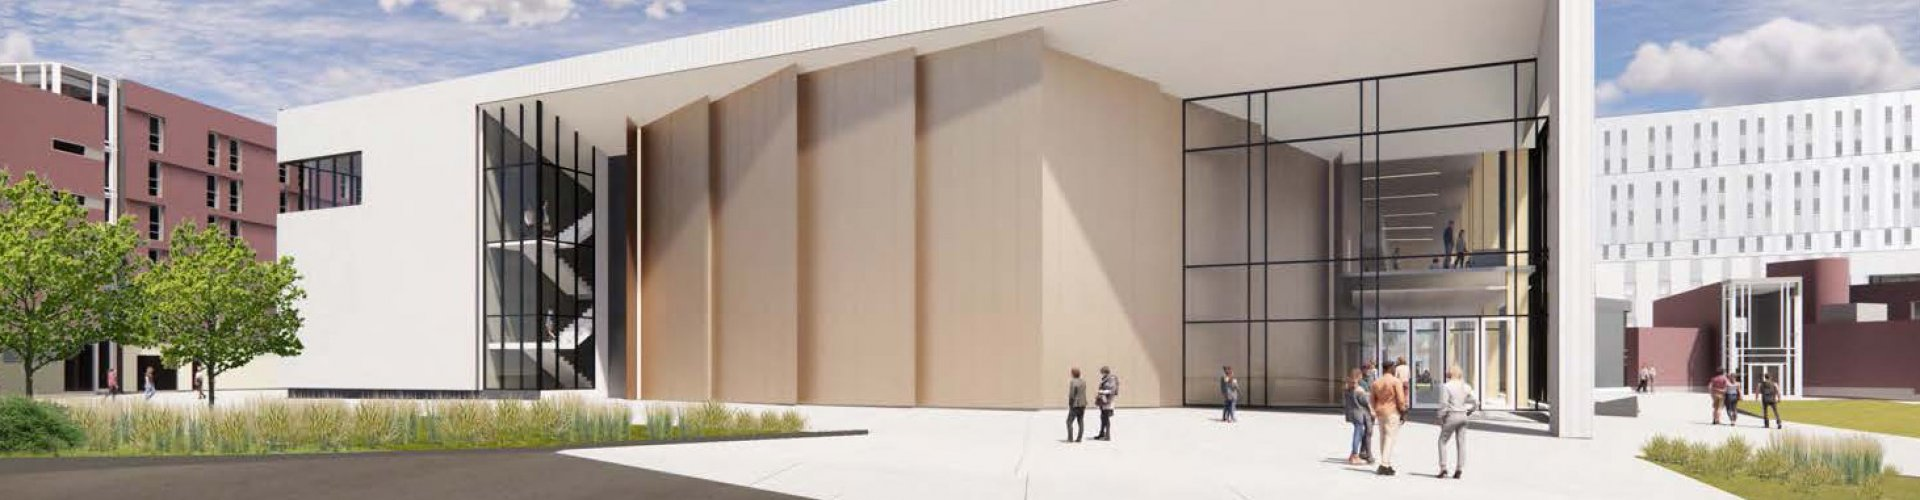 Rendering of the east elevation of the new building